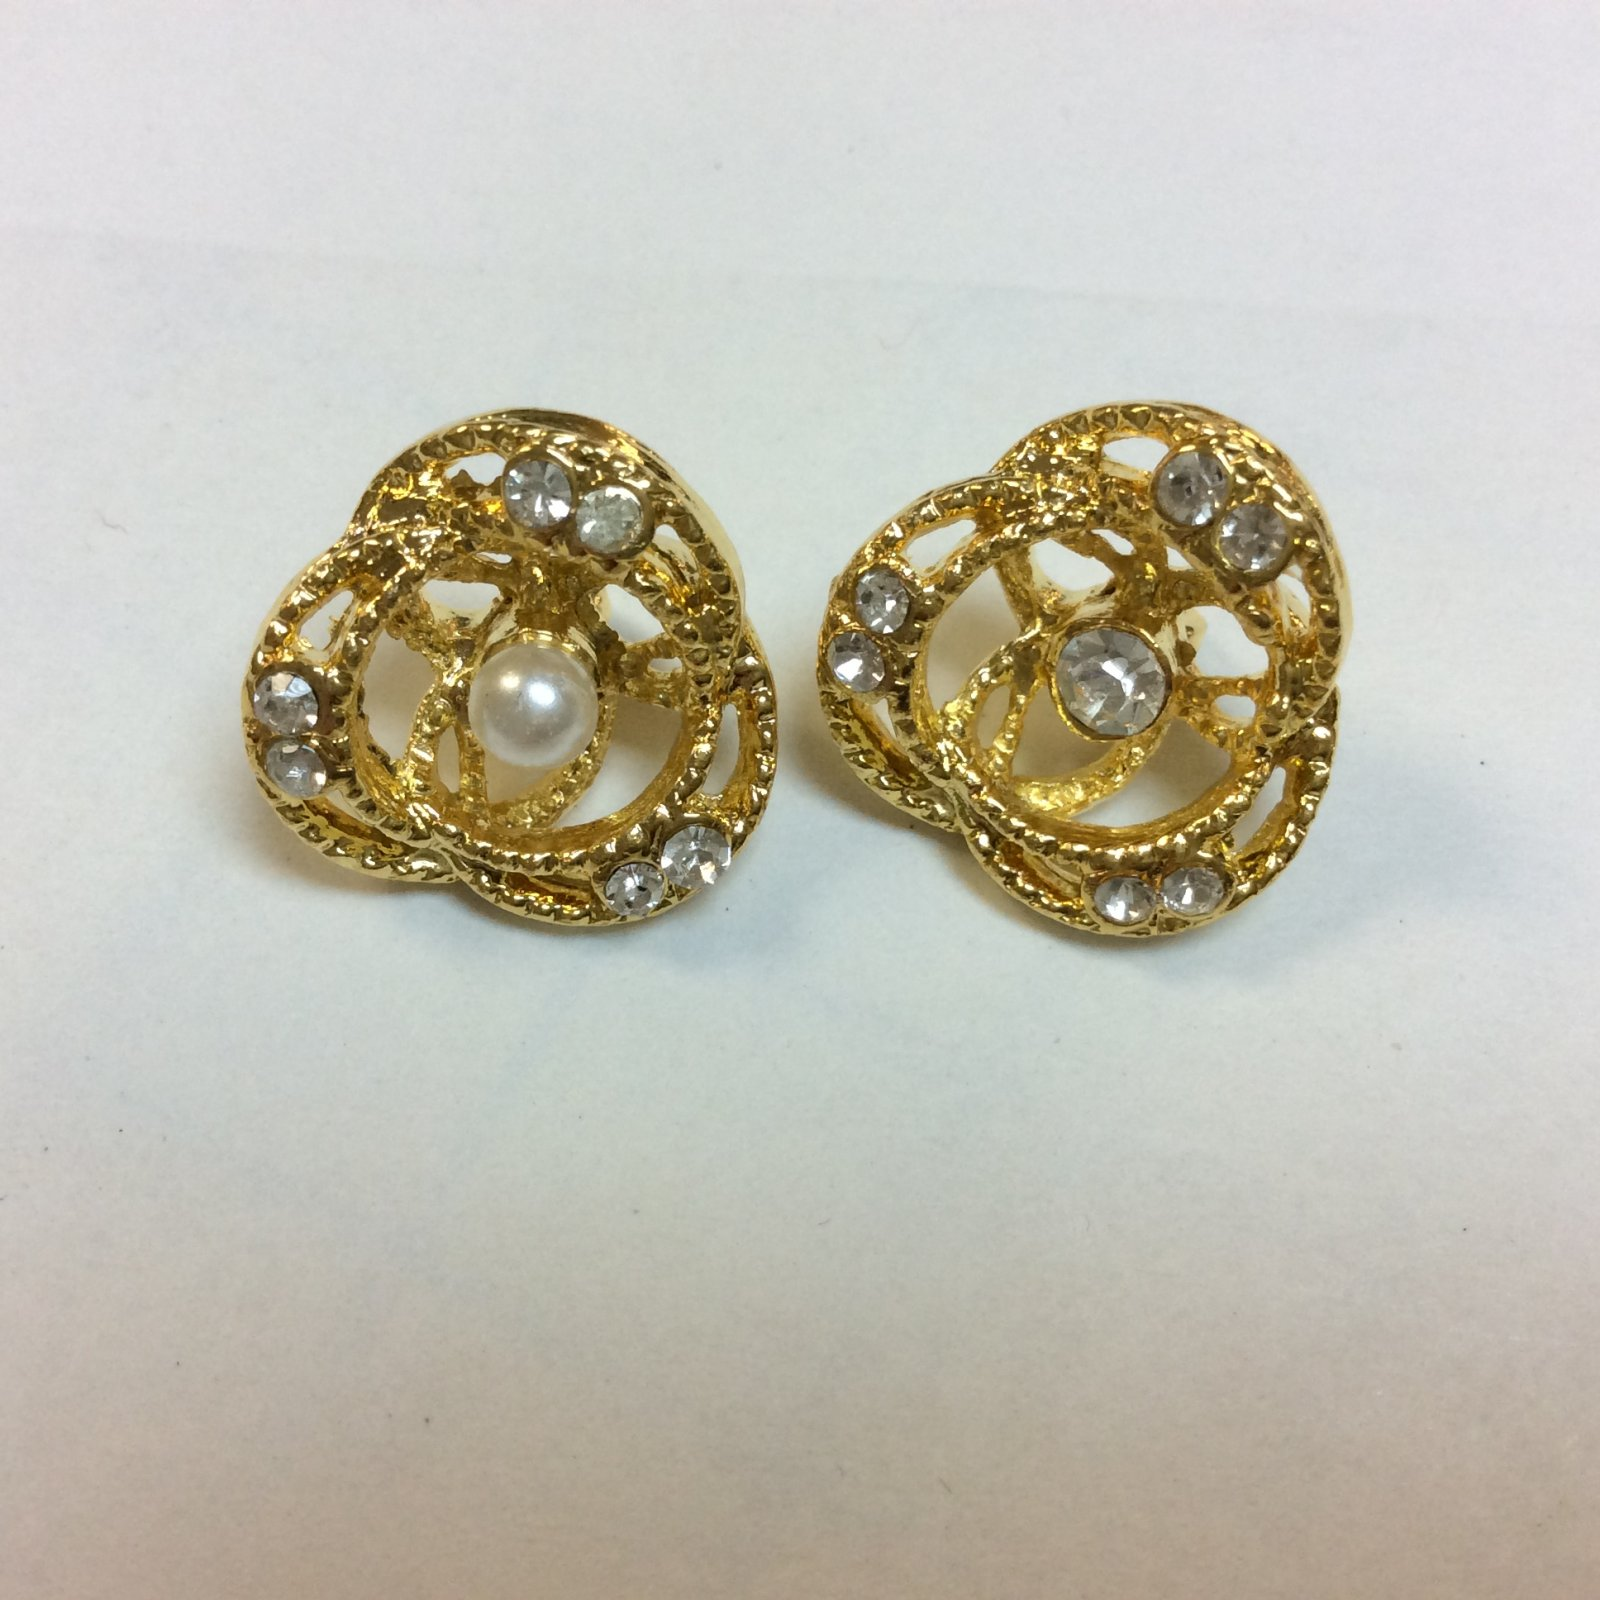 Gold Rhinestone Button with Pearl or Rhinestone Center